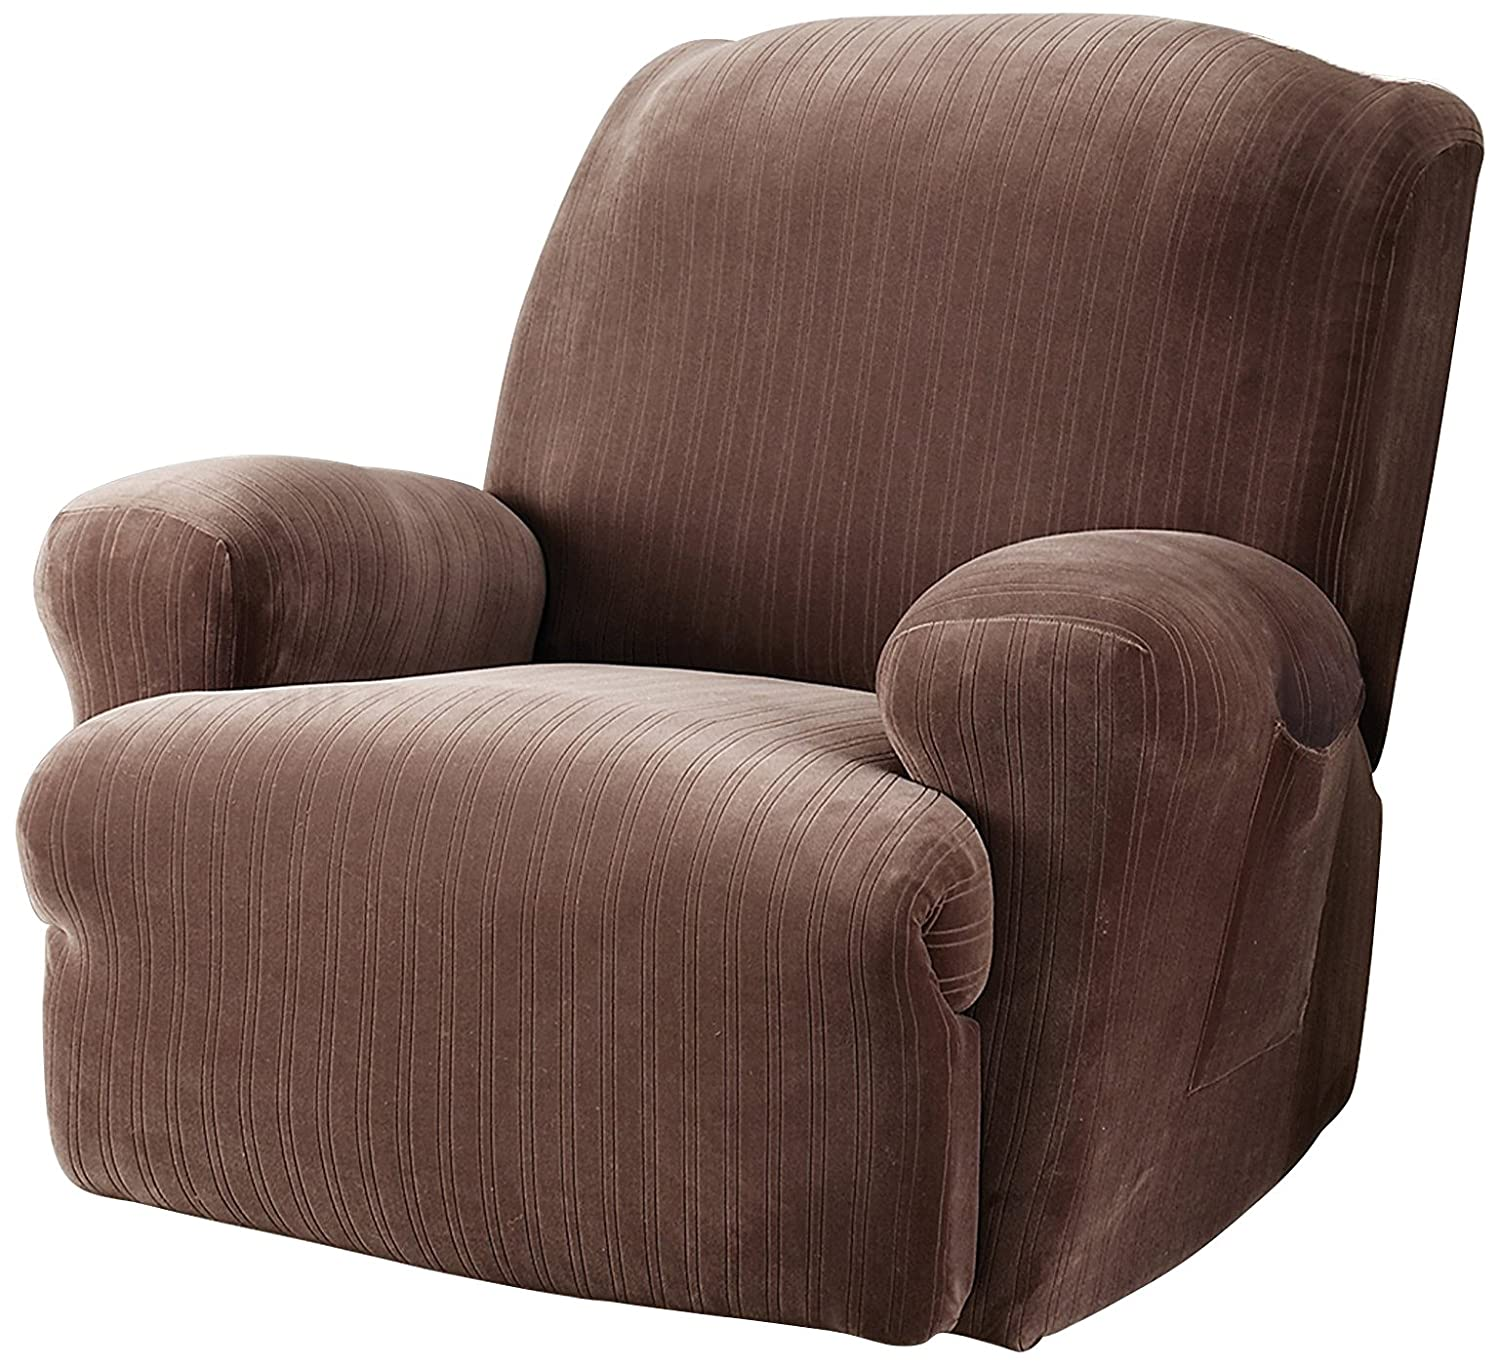 ip sure walmart recliner fit slipcovers stretch for recliners suede com slipcover